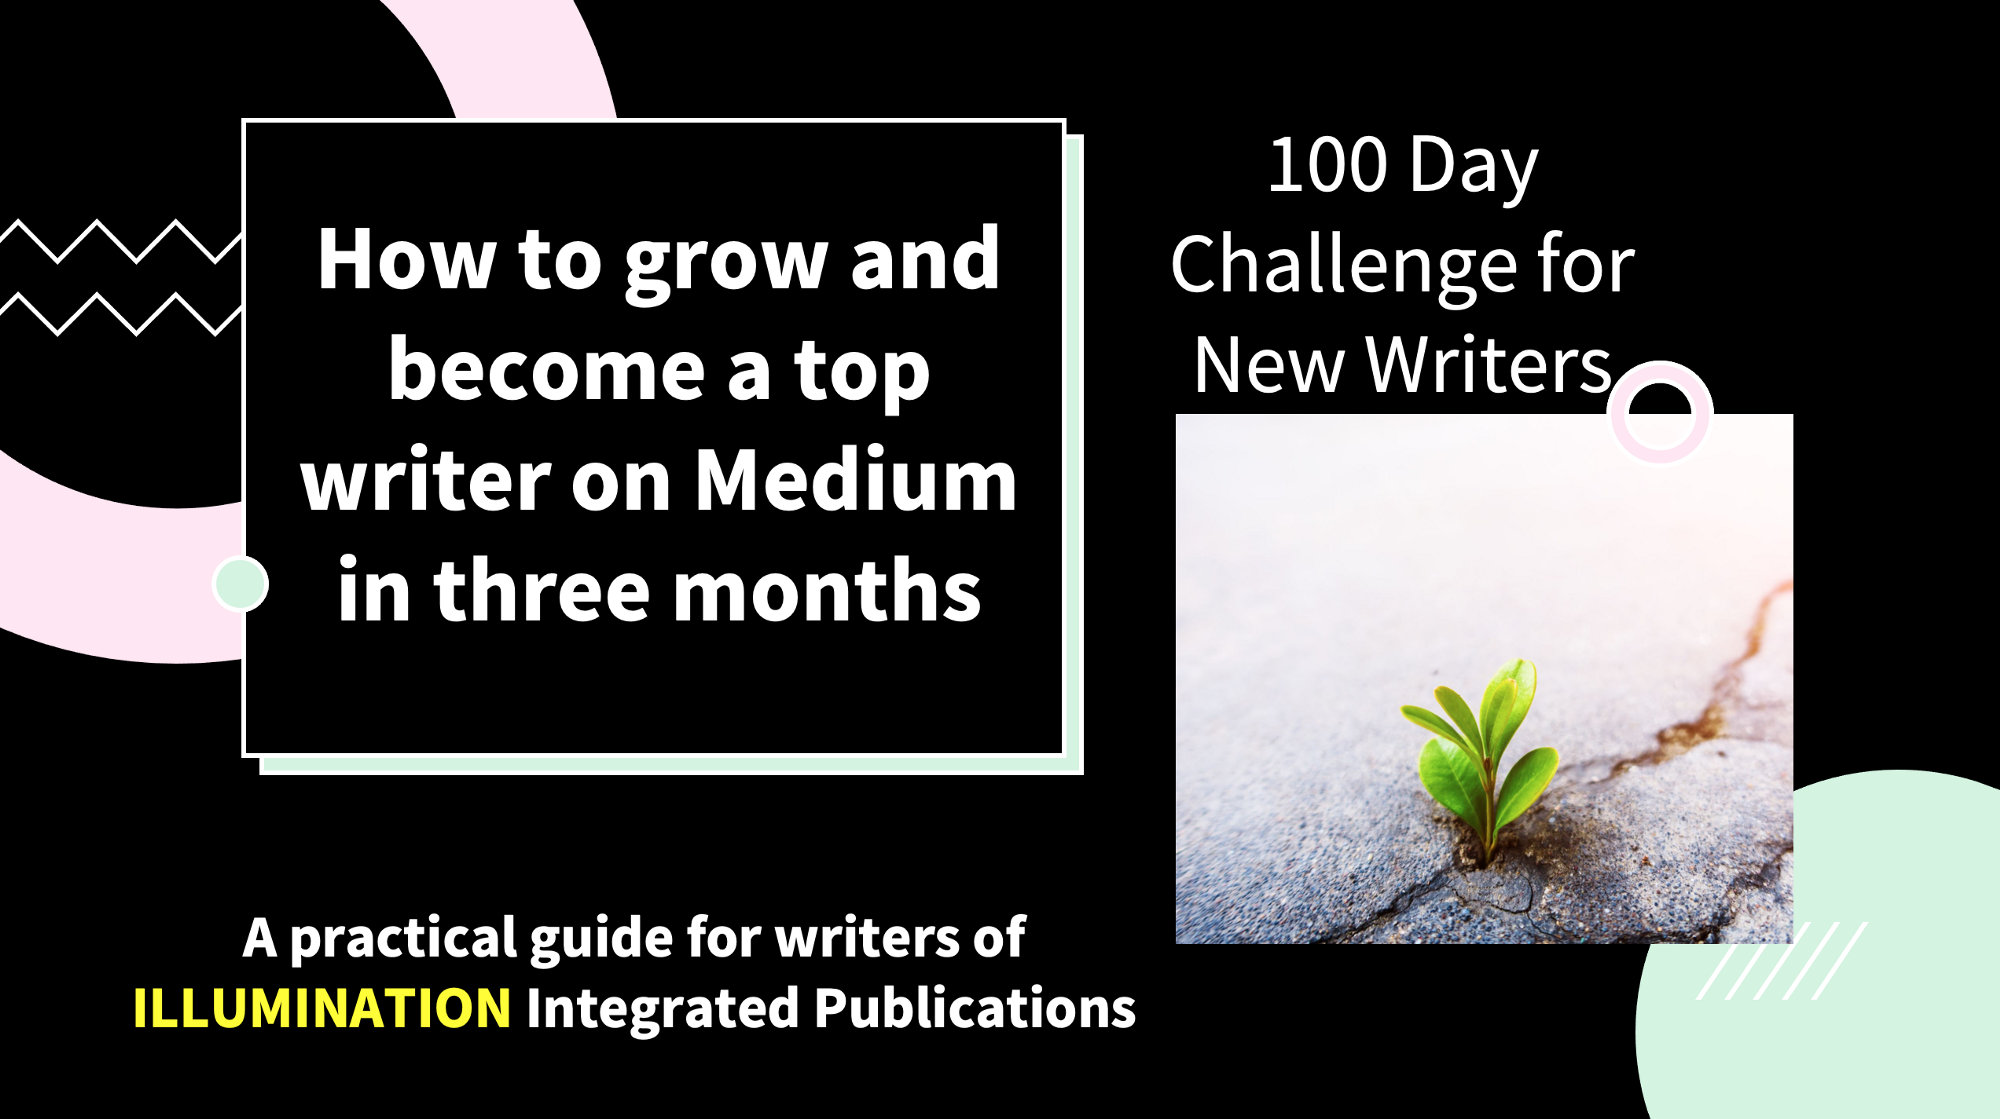 100 Day Writing Challenge For New Writers How to grow and become a top writer on Medium in three months. A guide by Dr Mehmet Yildiz — Chief Editor of ILLUMINATION Integrated Publications on Medium.